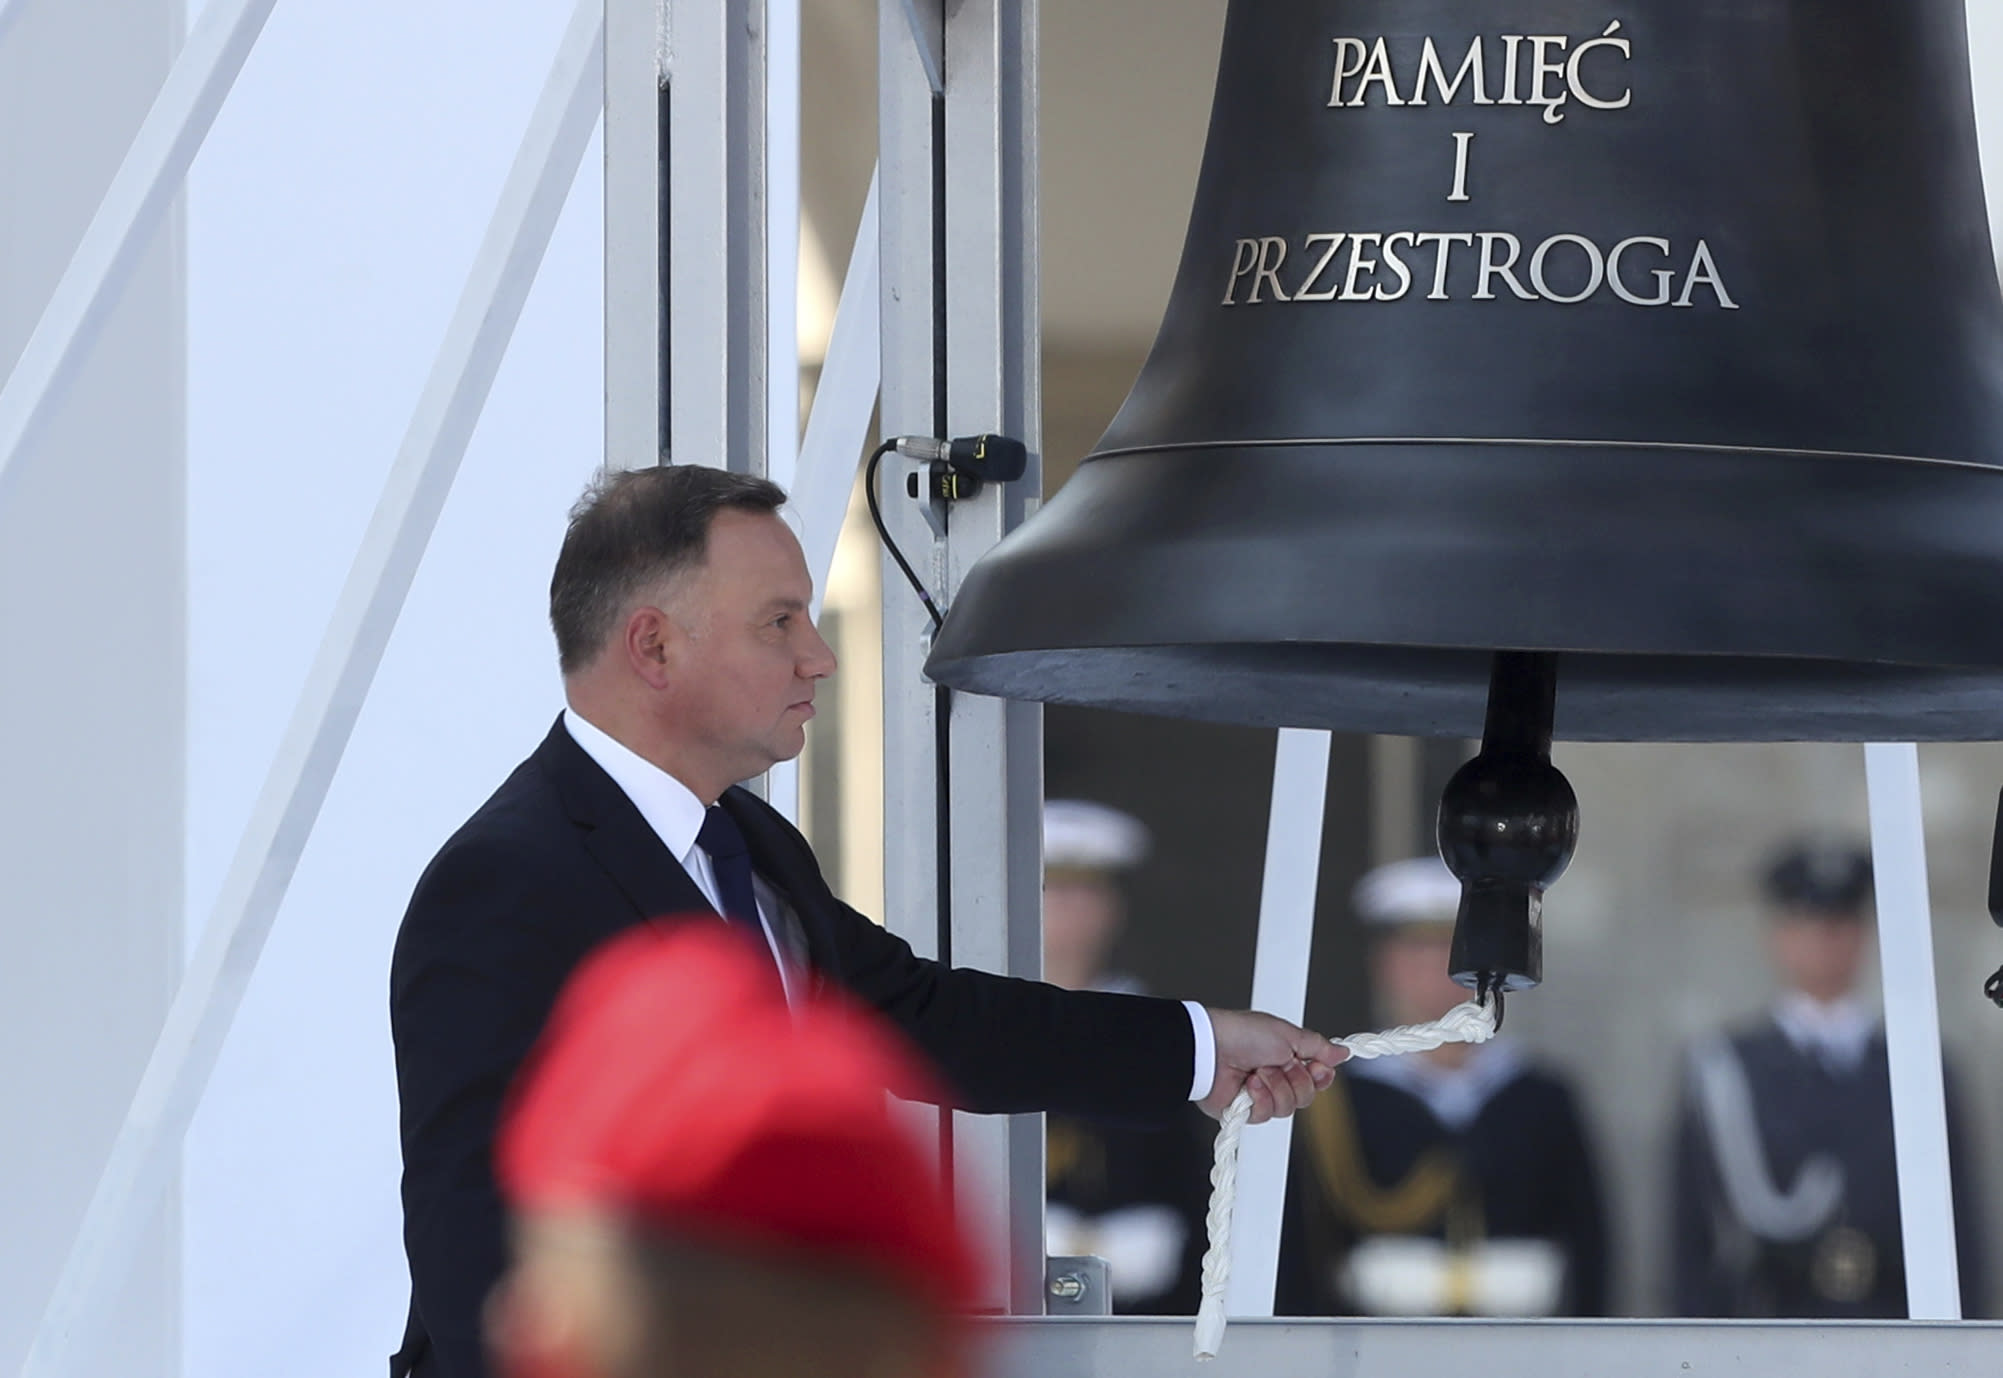 Polish President Andrzej Duda rings the Bell of Memory and Warning during a memorial ceremony marking the 80th anniversary of the start of World War II in Warsaw, Poland, Sunday, Sept. 1, 2019.(AP Photo/Czarek Sokolowski)